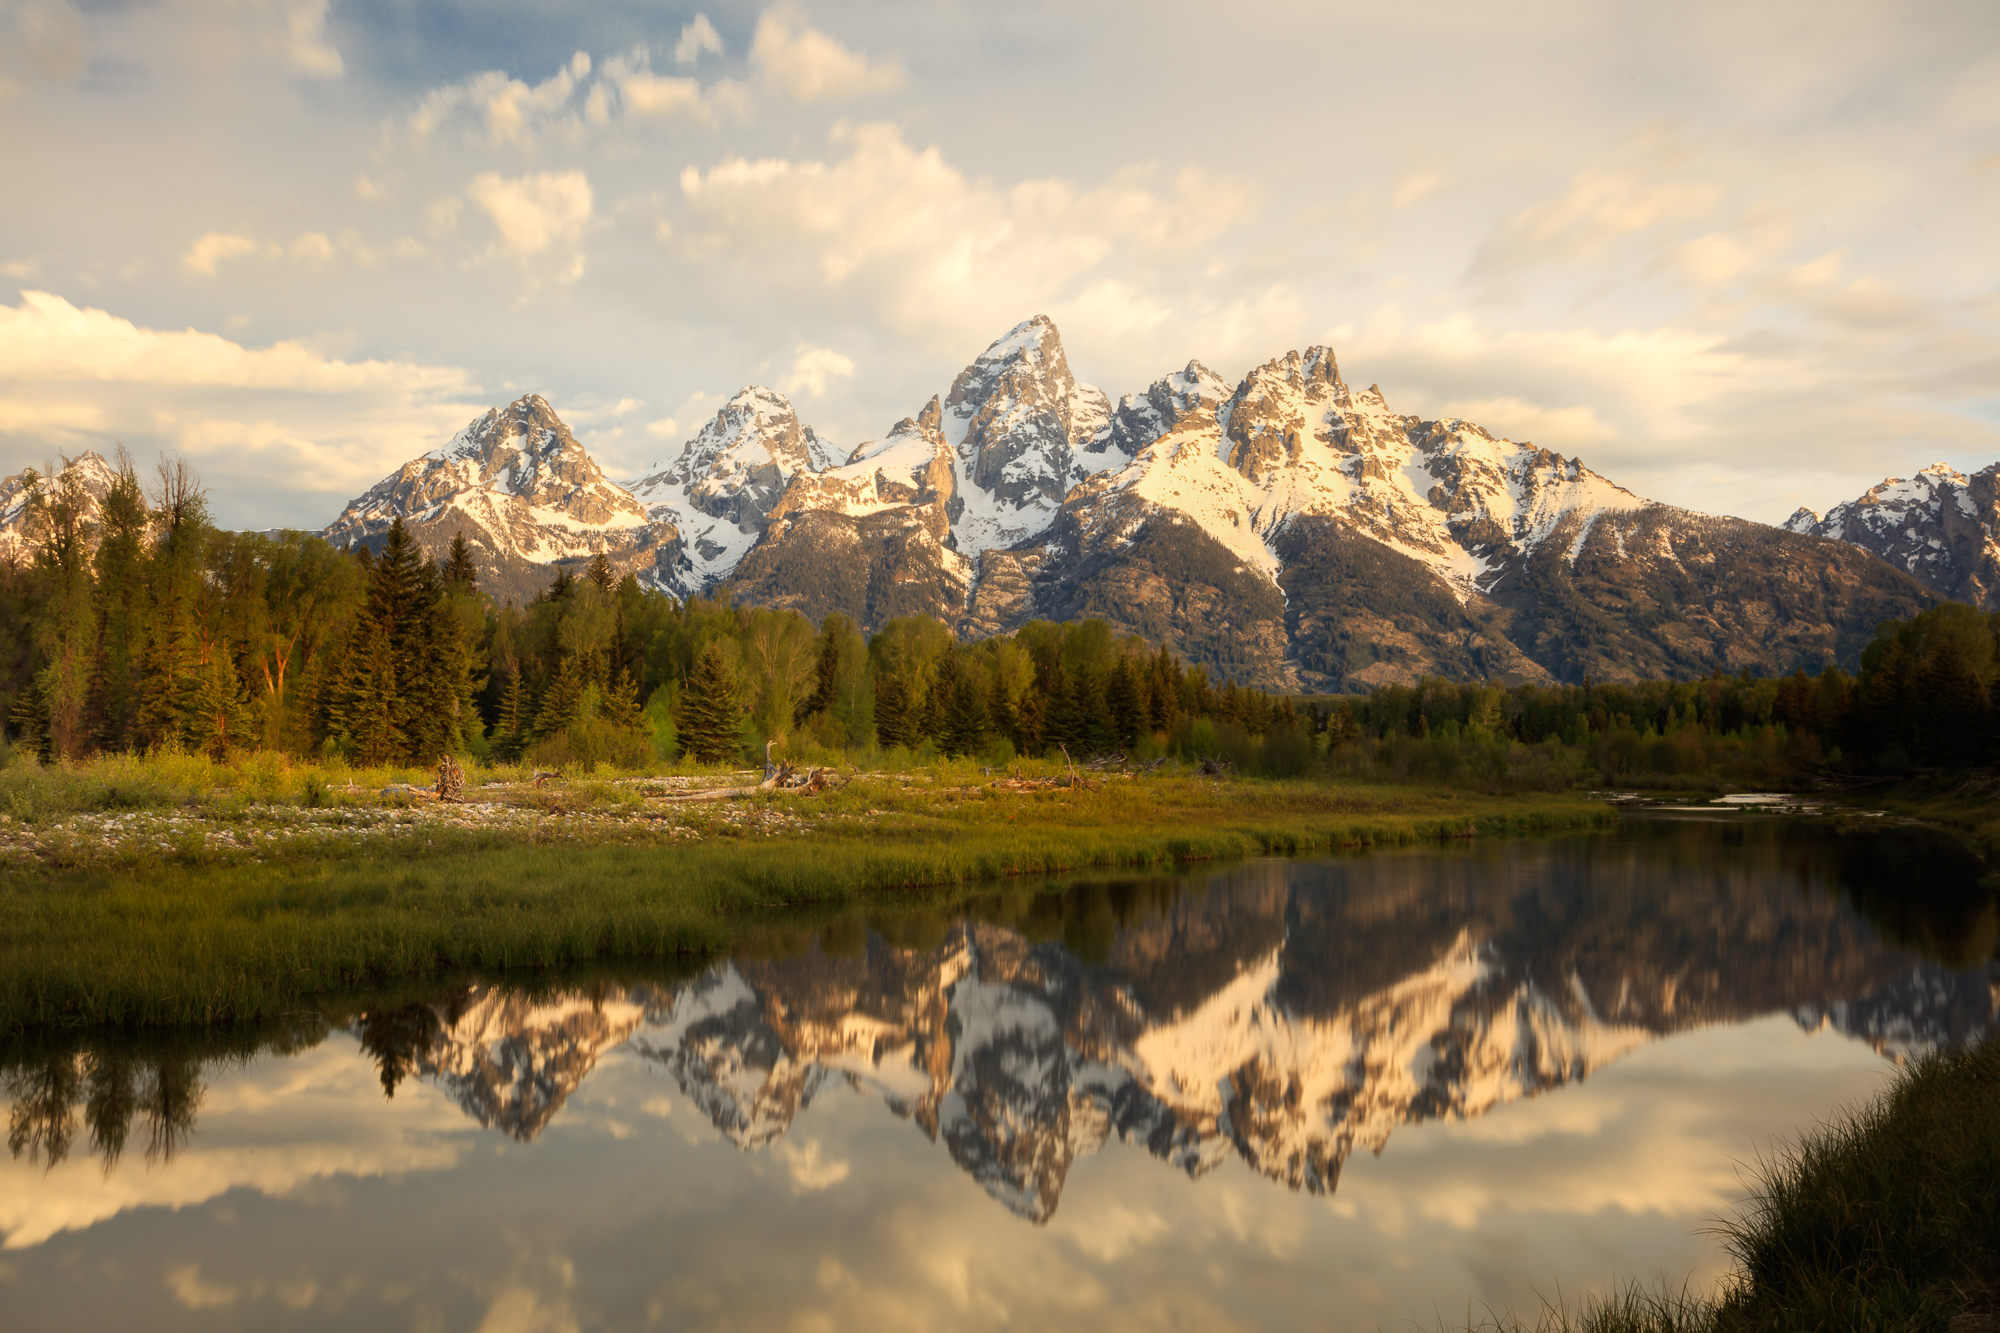 Paul Craig Interior Photographer Personal Work USA Grand Tetons